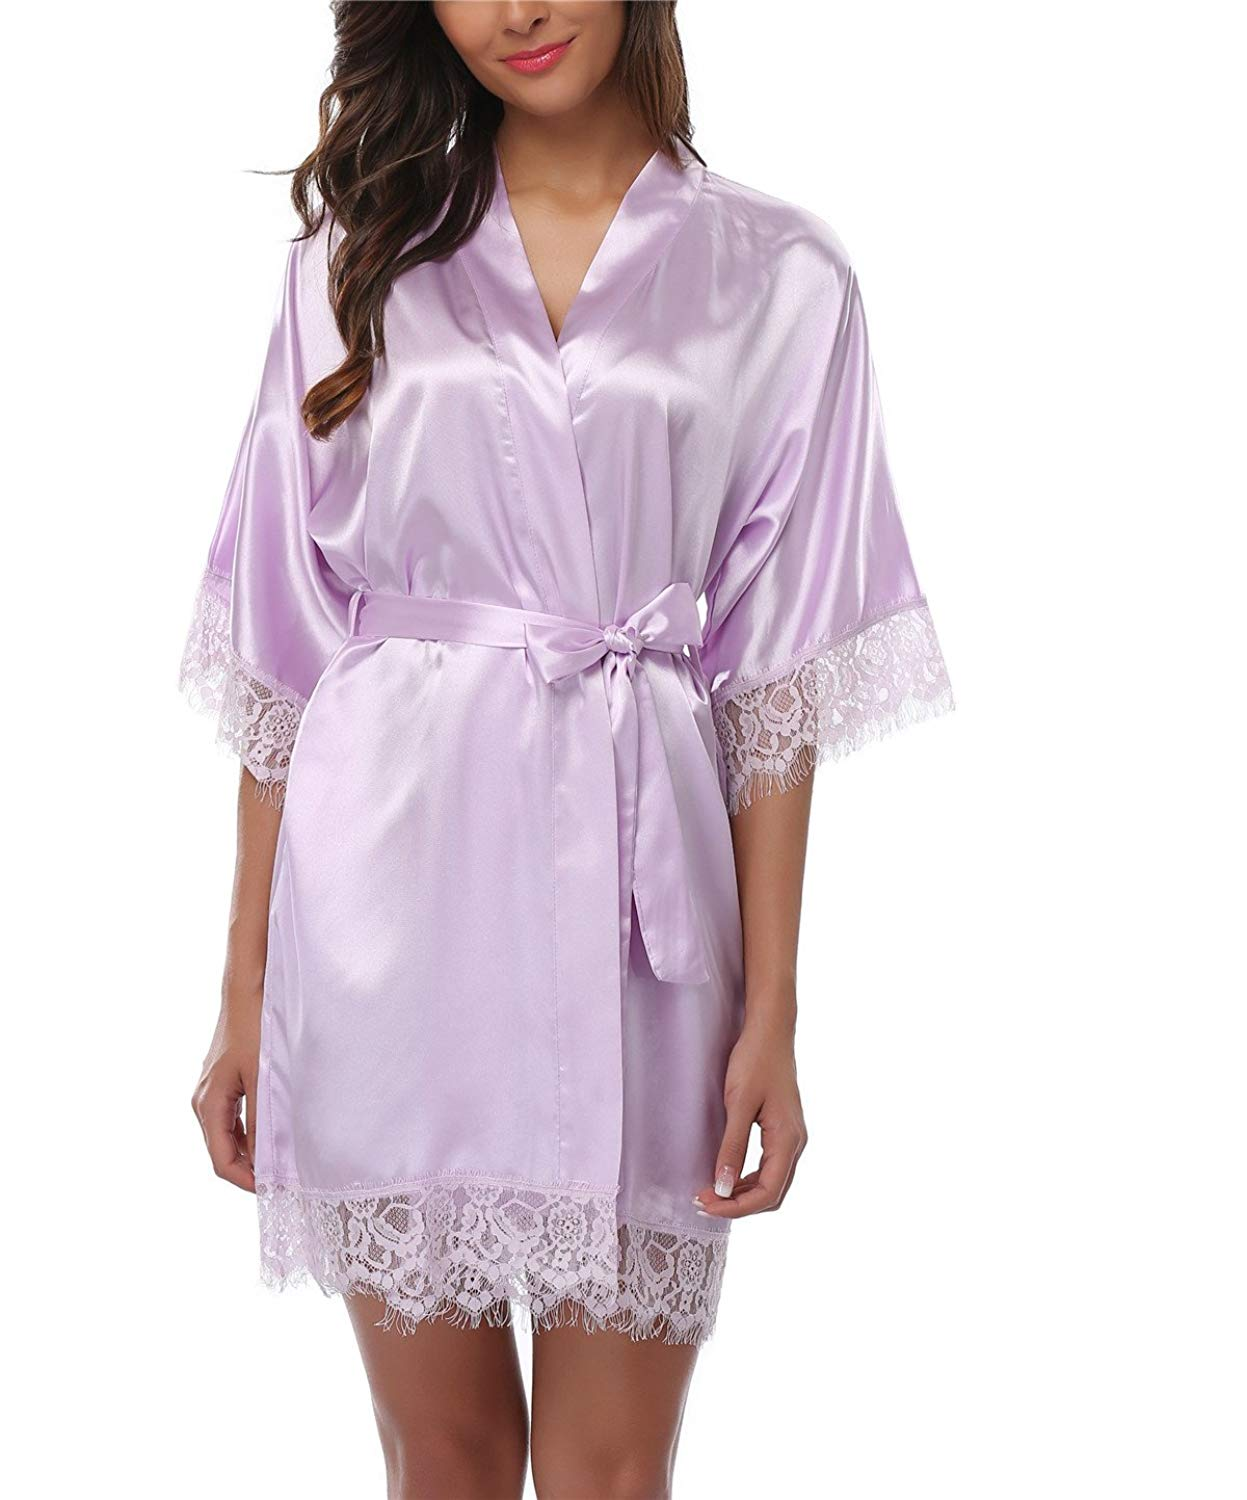 17dcc4d307 Get Quotations · FADSHOW Women s Satin Robes Lace Trim Short Kimono  Bathrobes Silk Nightwear Wedding Party Robes